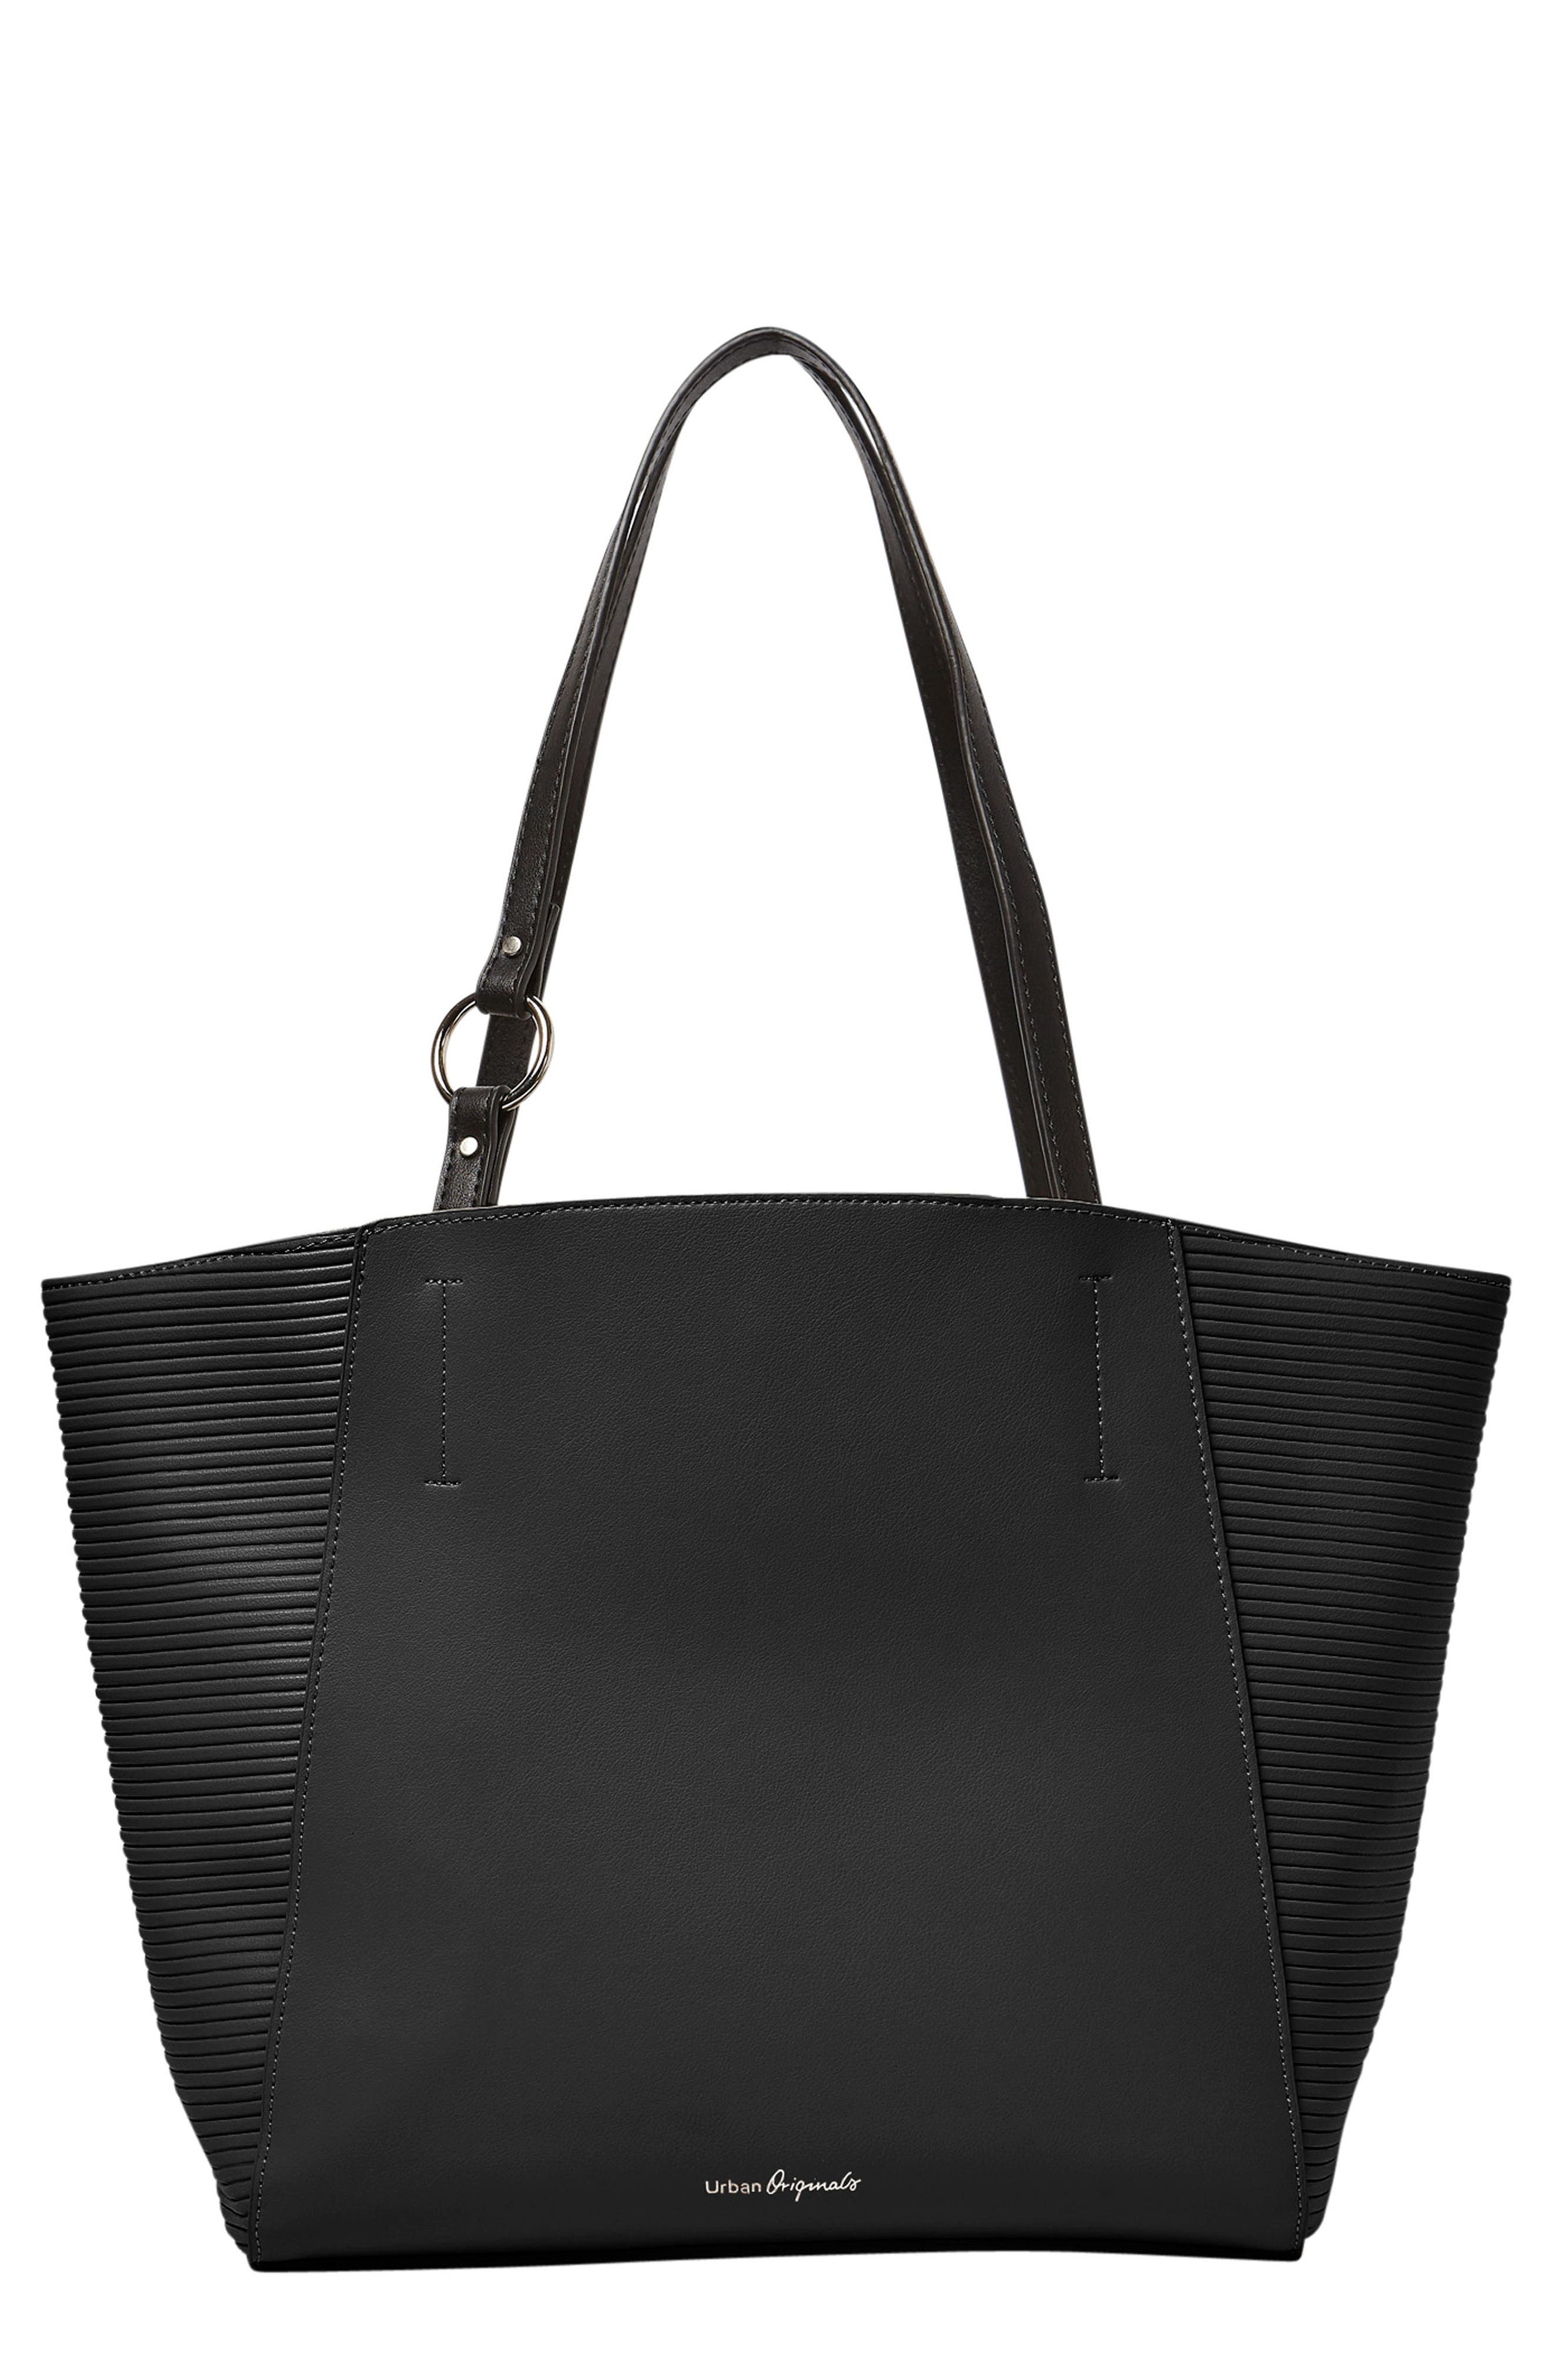 Urban Originals Splendour Vegan Leather Tote